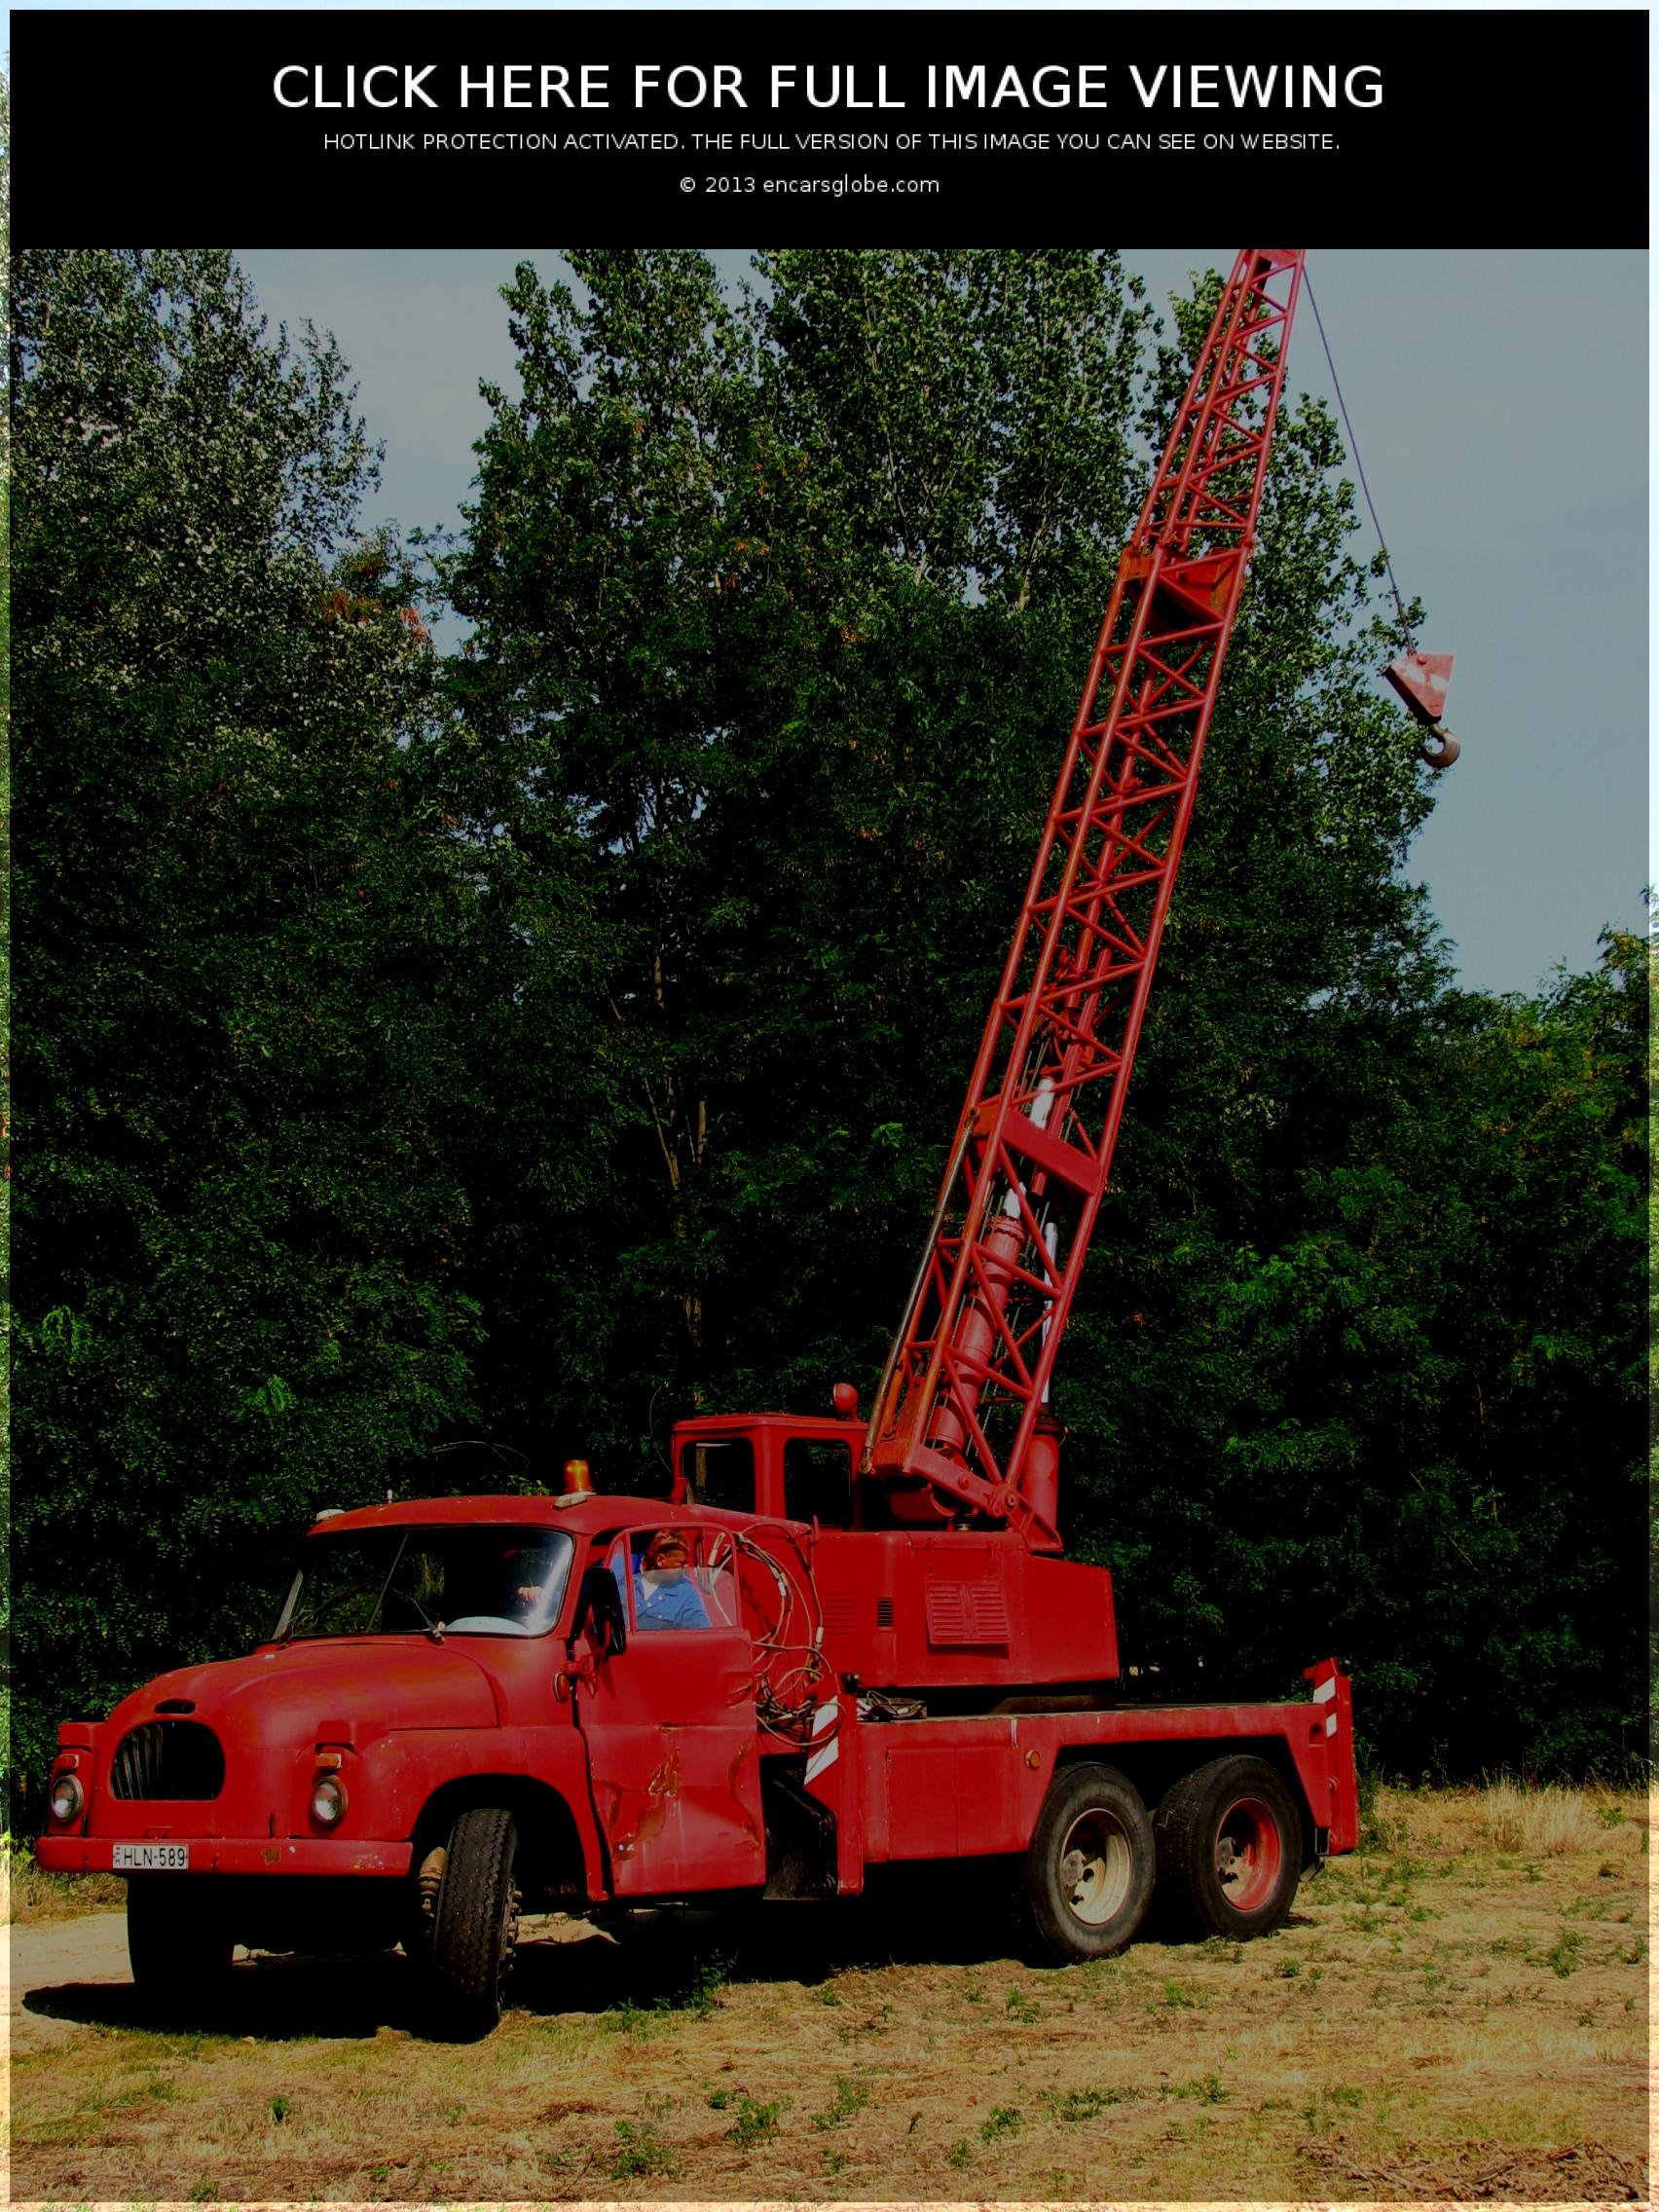 Tatra 138 NTt 6x6 Photo Gallery: Photo #06 out of 10, Image Size ...